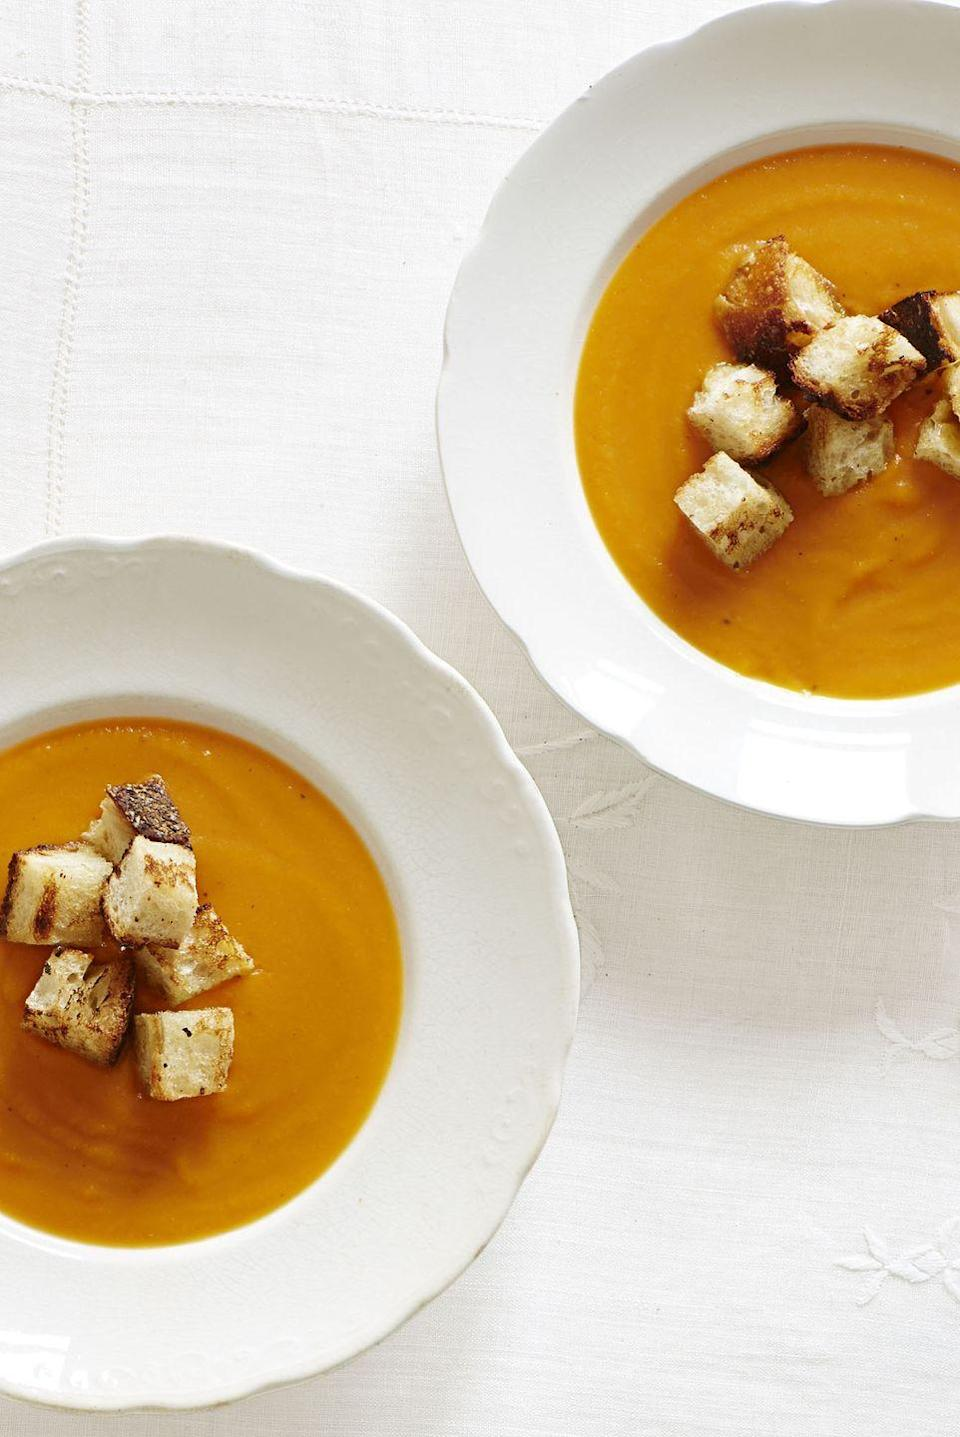 "<p>Start off your feast with this easy-to-make — and easy-to-eat — one-pot soup.</p><p><em><a href=""https://www.goodhousekeeping.com/food-recipes/a14444/winter-squash-soup-recipe-ghk1113/"" rel=""nofollow noopener"" target=""_blank"" data-ylk=""slk:Get the recipe for Winter Squash Soup »"" class=""link rapid-noclick-resp"">Get the recipe for Winter Squash Soup »</a></em></p><p><strong>RELATED: </strong><a href=""https://www.goodhousekeeping.com/holidays/thanksgiving-ideas/g4734/butternut-squash-soup-recipes/"" rel=""nofollow noopener"" target=""_blank"" data-ylk=""slk:20 Butternut Squash Soup Recipes to Warm Up Your Thanksgiving"" class=""link rapid-noclick-resp"">20 Butternut Squash Soup Recipes to Warm Up Your Thanksgiving</a></p>"